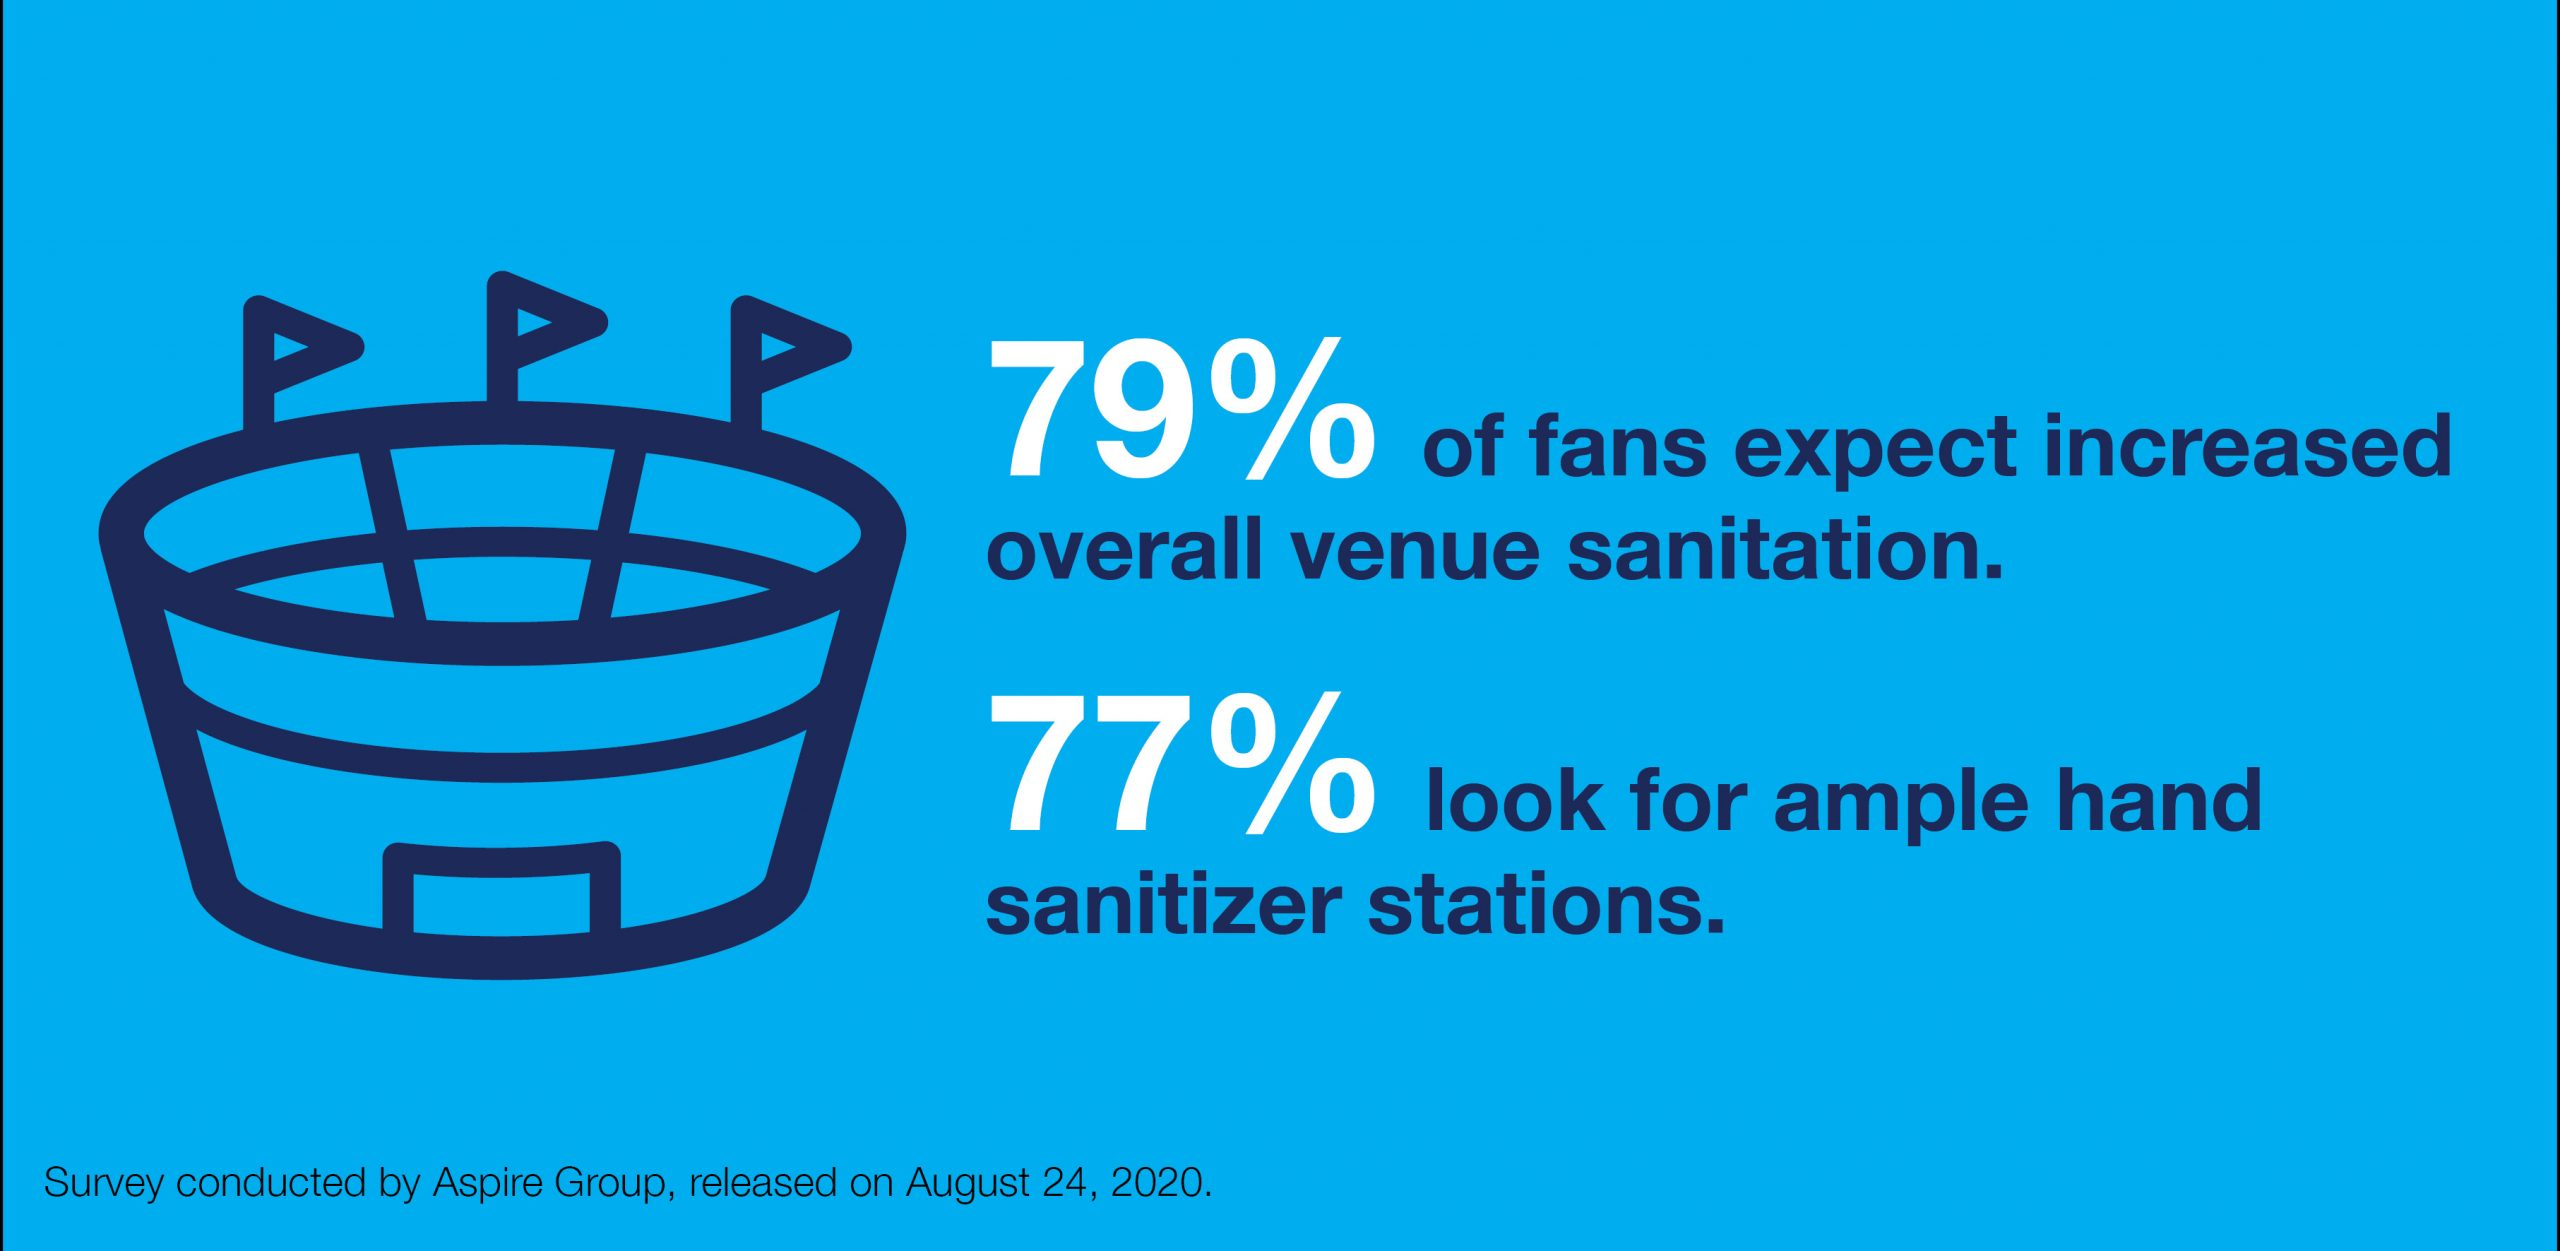 79% of fans expect increased overall venue sanitation